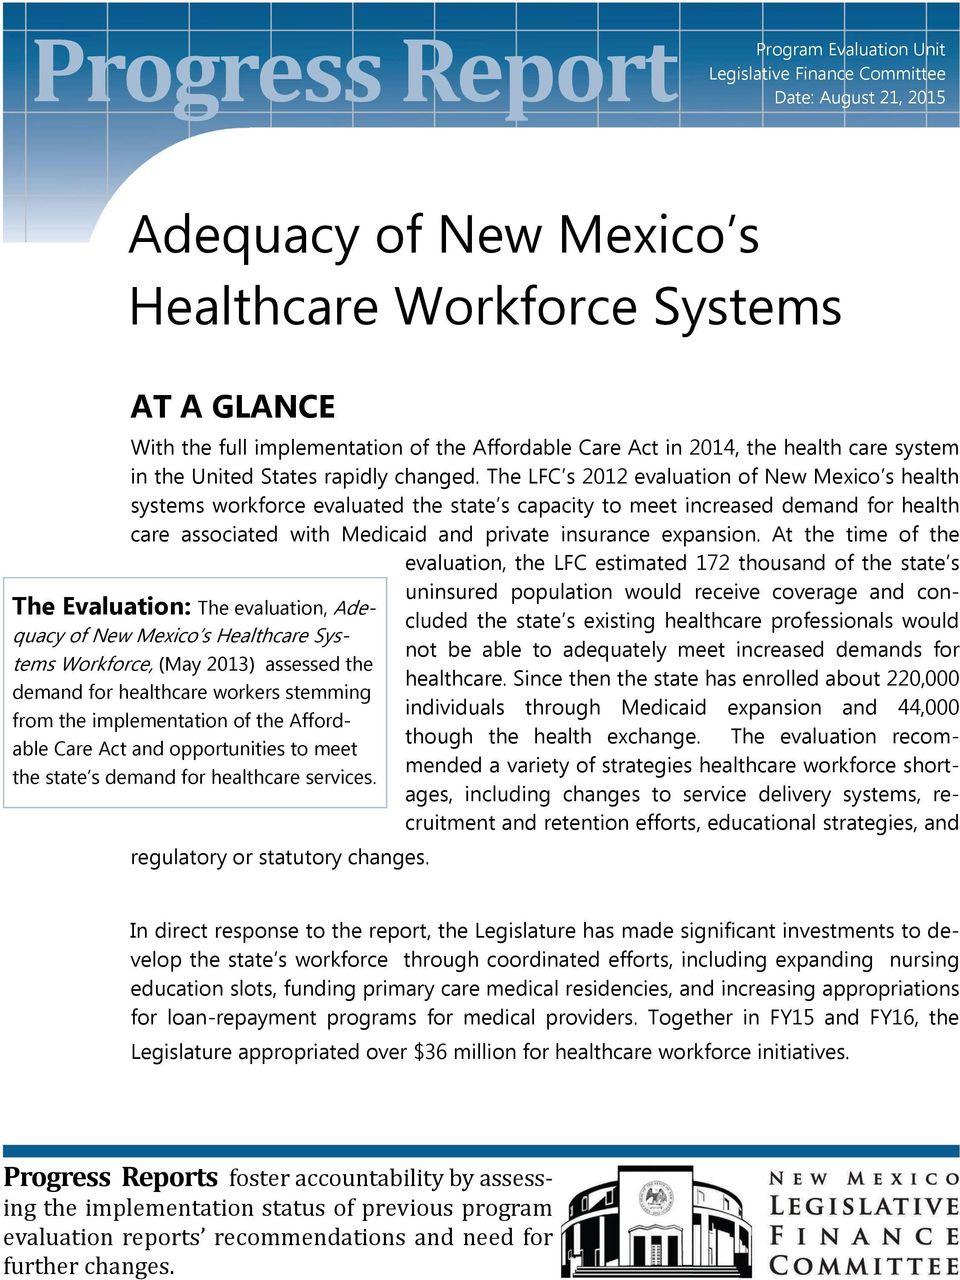 The LFC s 2012 evaluation of New Mexico s health systems workforce evaluated the state s capacity to meet increased demand for health care associated with Medicaid and private insurance expansion.